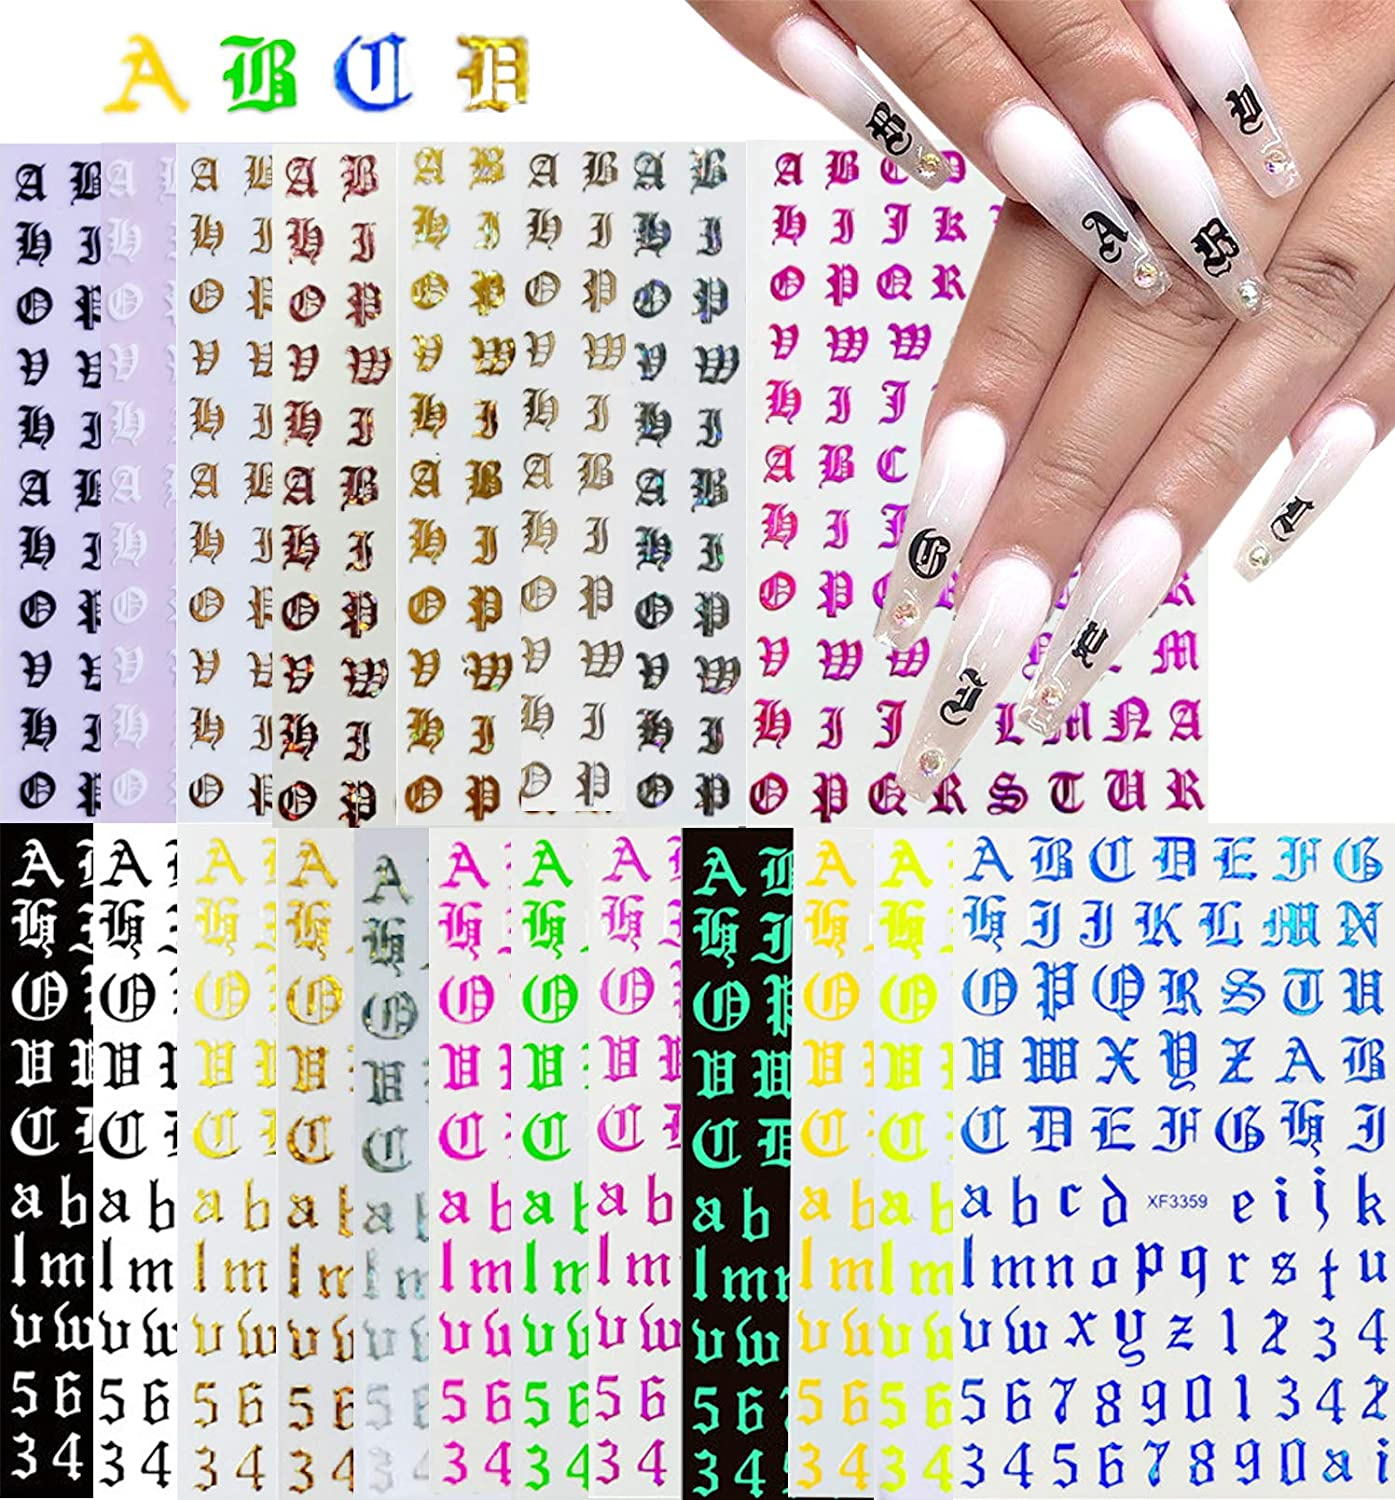 20 Sheets Old English Letter Stickers Albuquerque Cash special price Mall Nail Holographic Alphabet